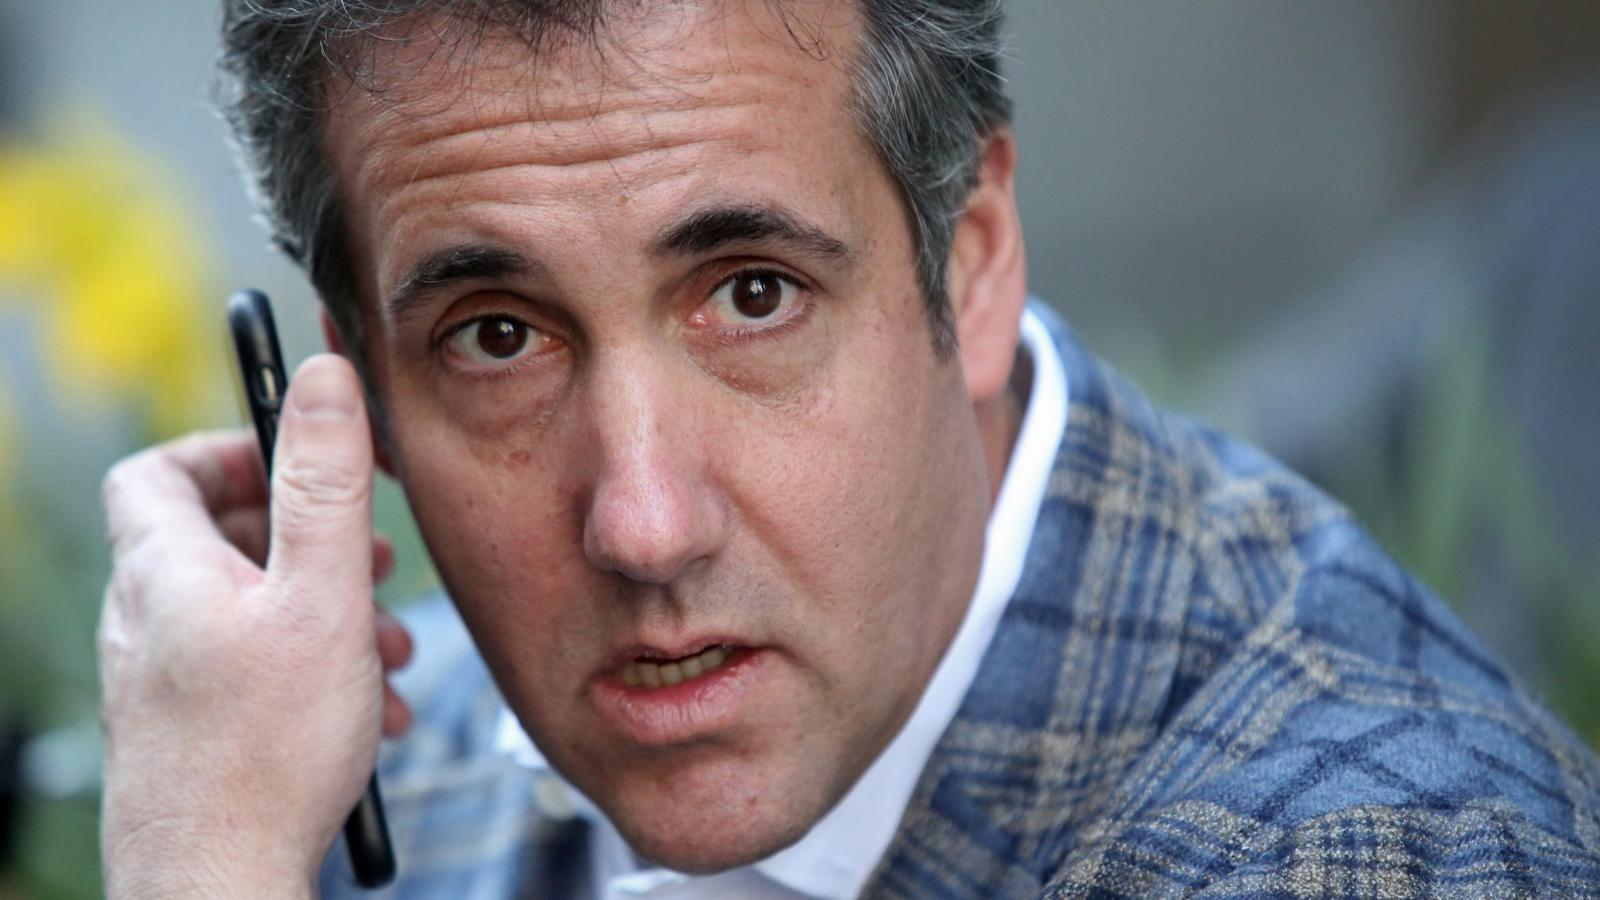 Michael Cohen, U.S. President Donald Trump's personal attorney, takes a call near the Loews Regency hotel on Park Ave on April 13, 2018, in New York City. (Yana Paskova / Getty Images)